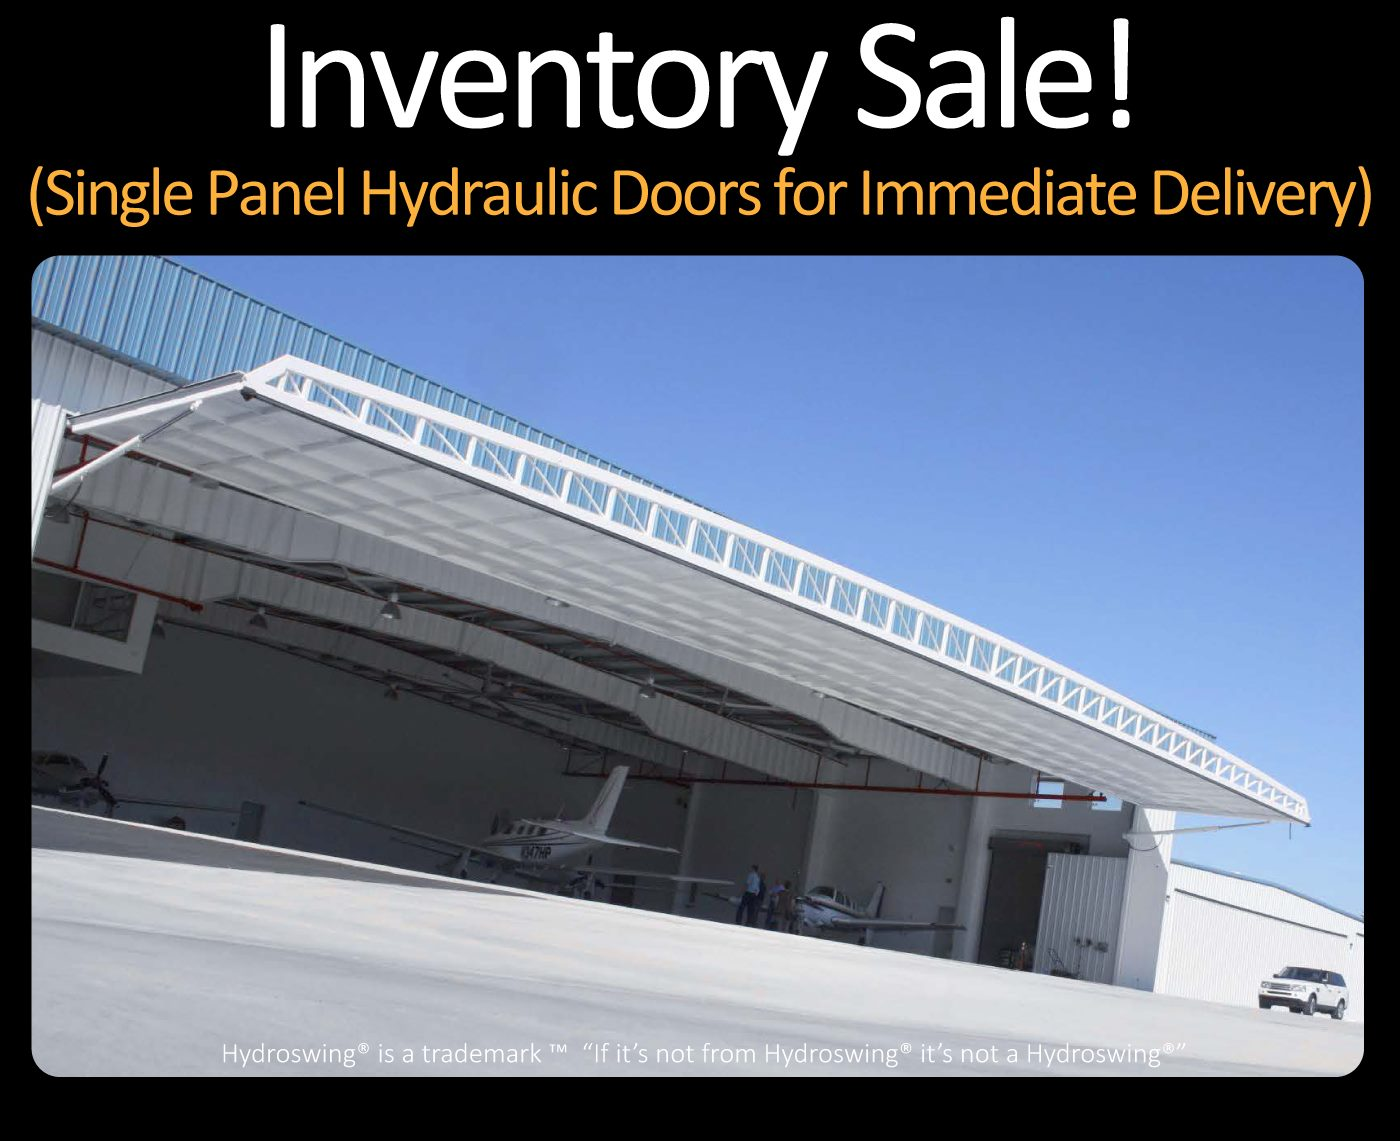 hydroswing inventory sale single panel hydraulic doors for immediate delivery